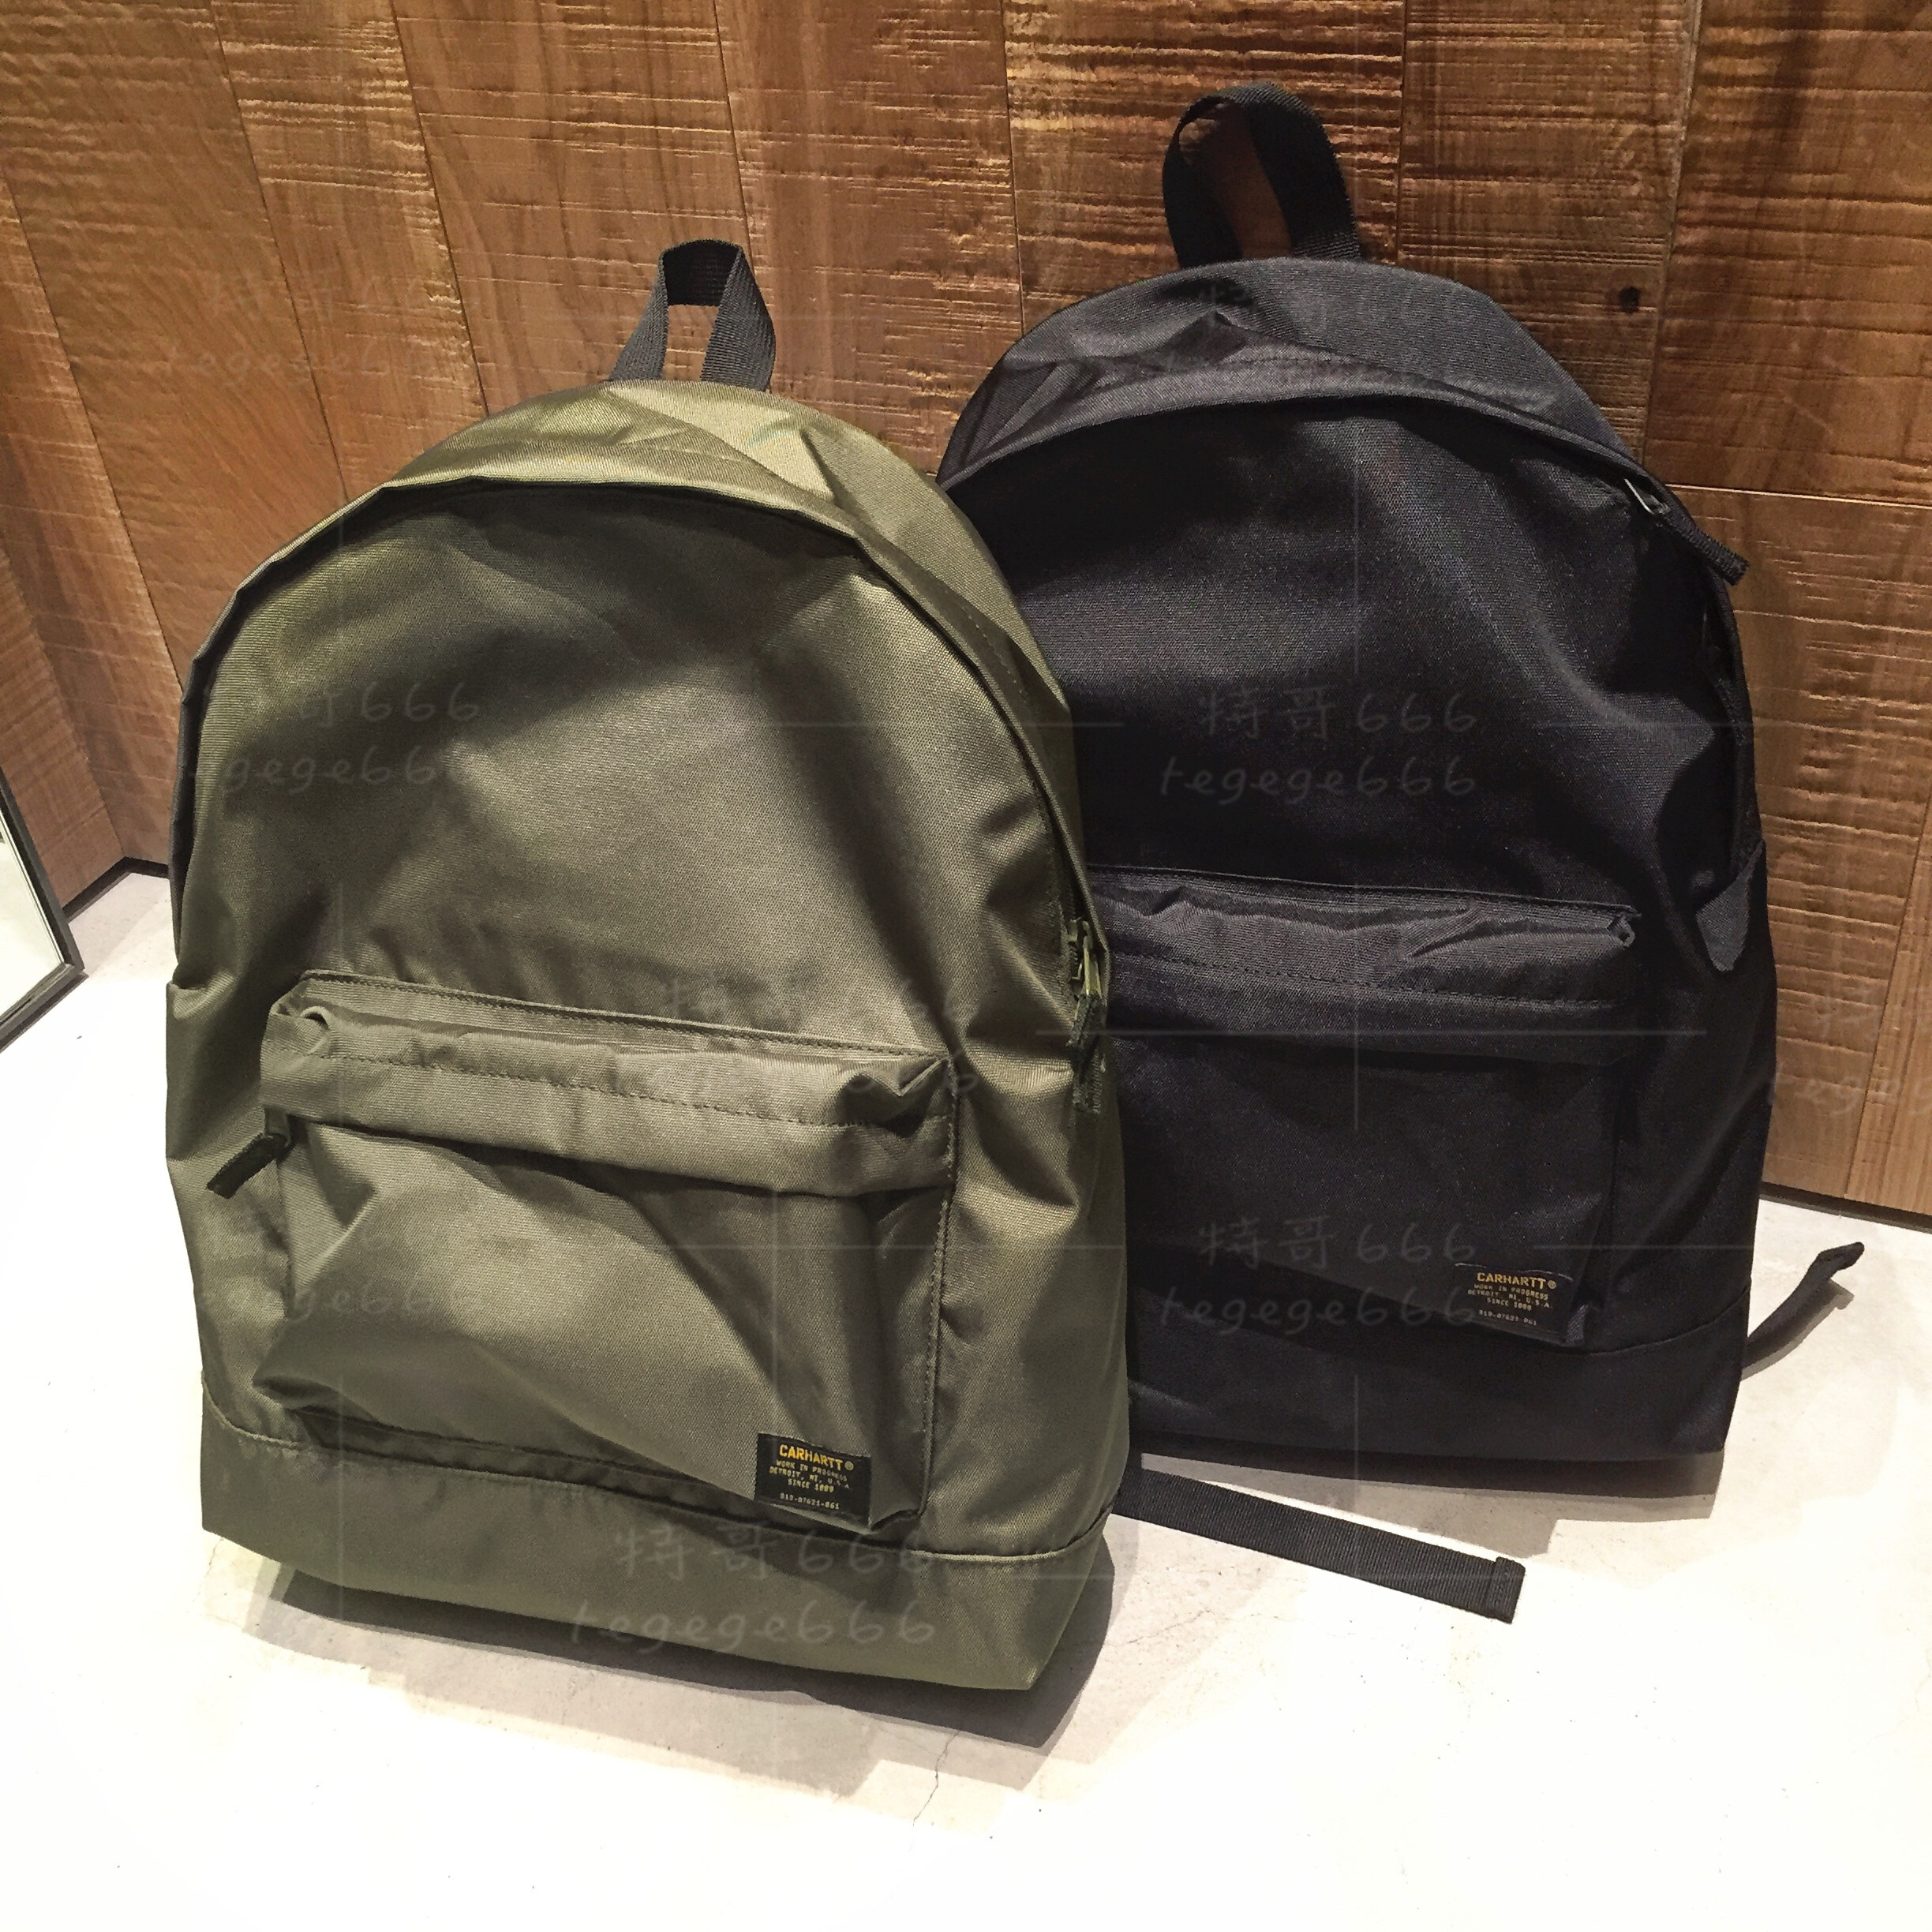 Spot CARHARTT WIP Backpack Backpack Computer Bag Bag Lightweight Simple Wild Military 18 Spring